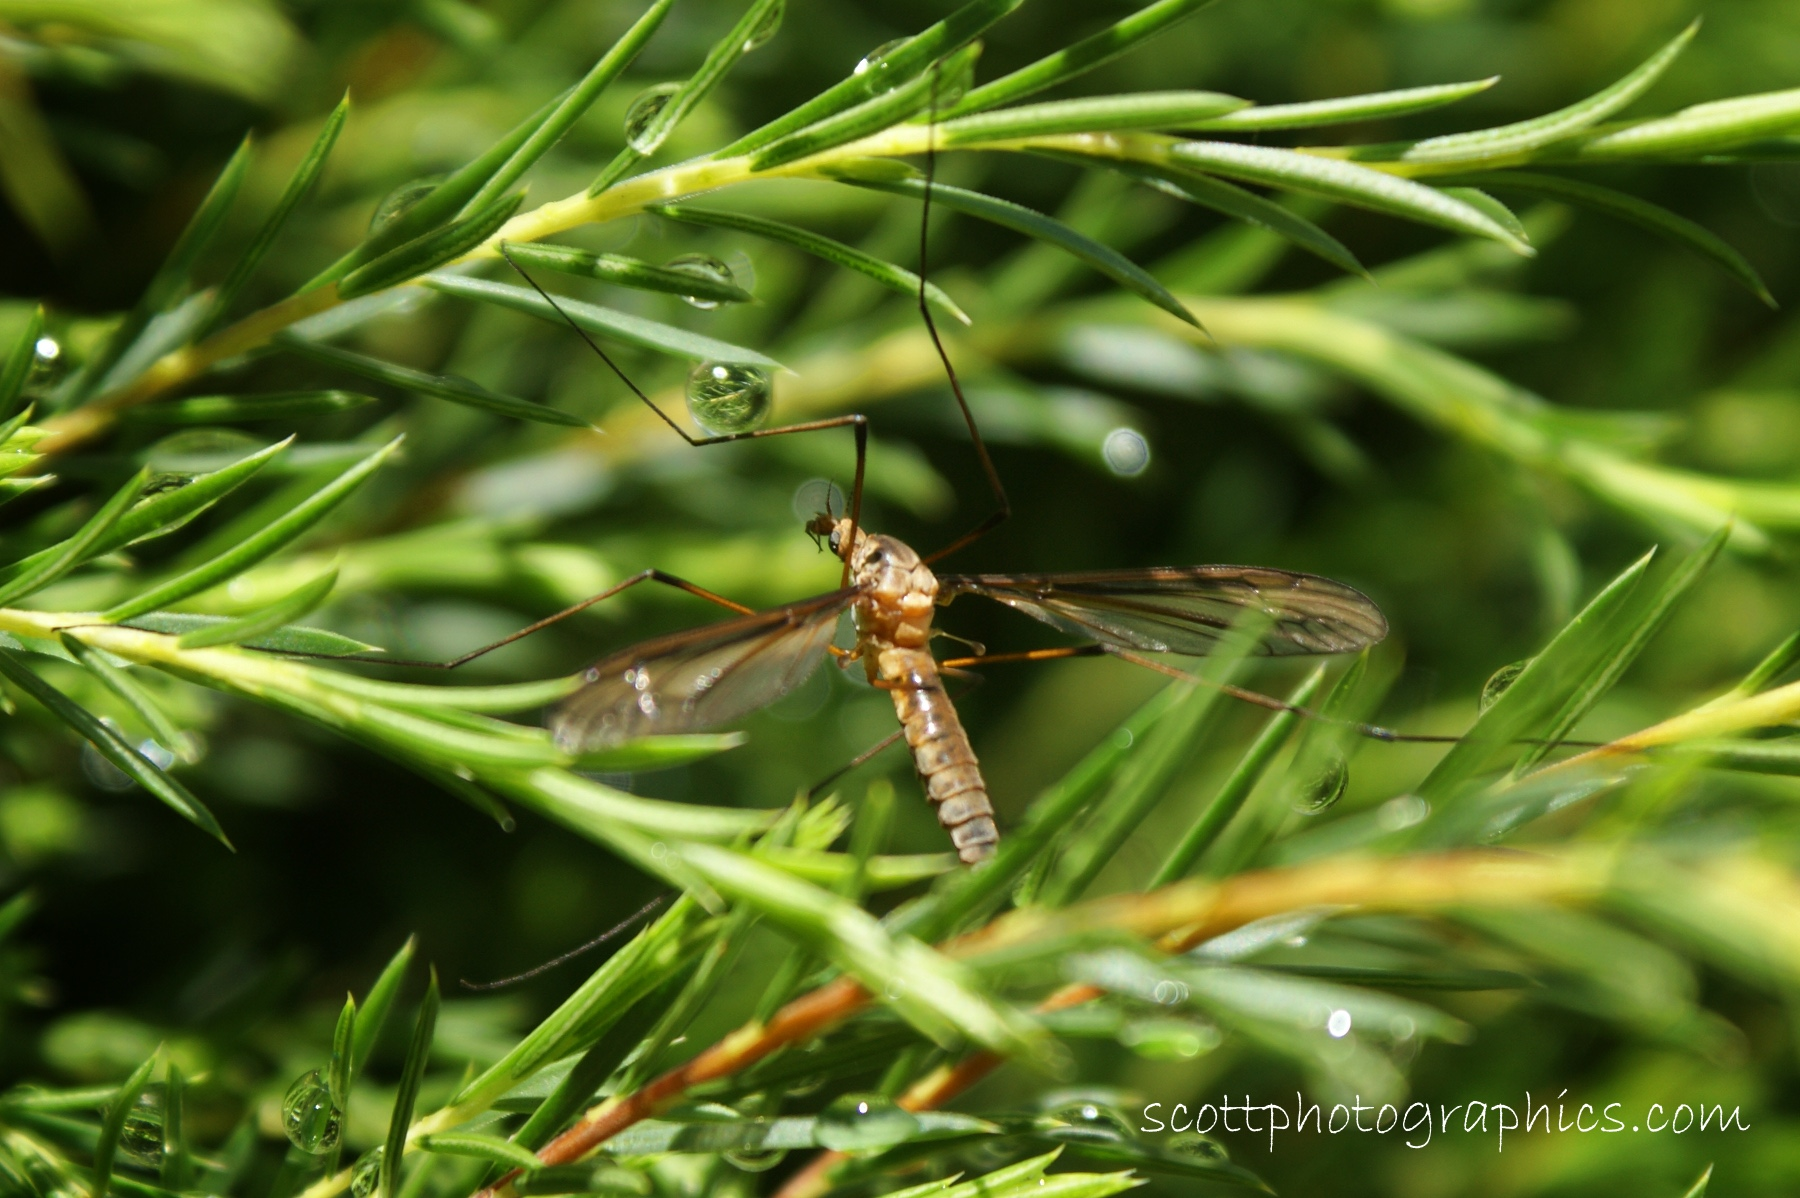 http://www.images.scottphotographics.com/shot-of-the-day/%2310/insect-among-water-droplets.jpg